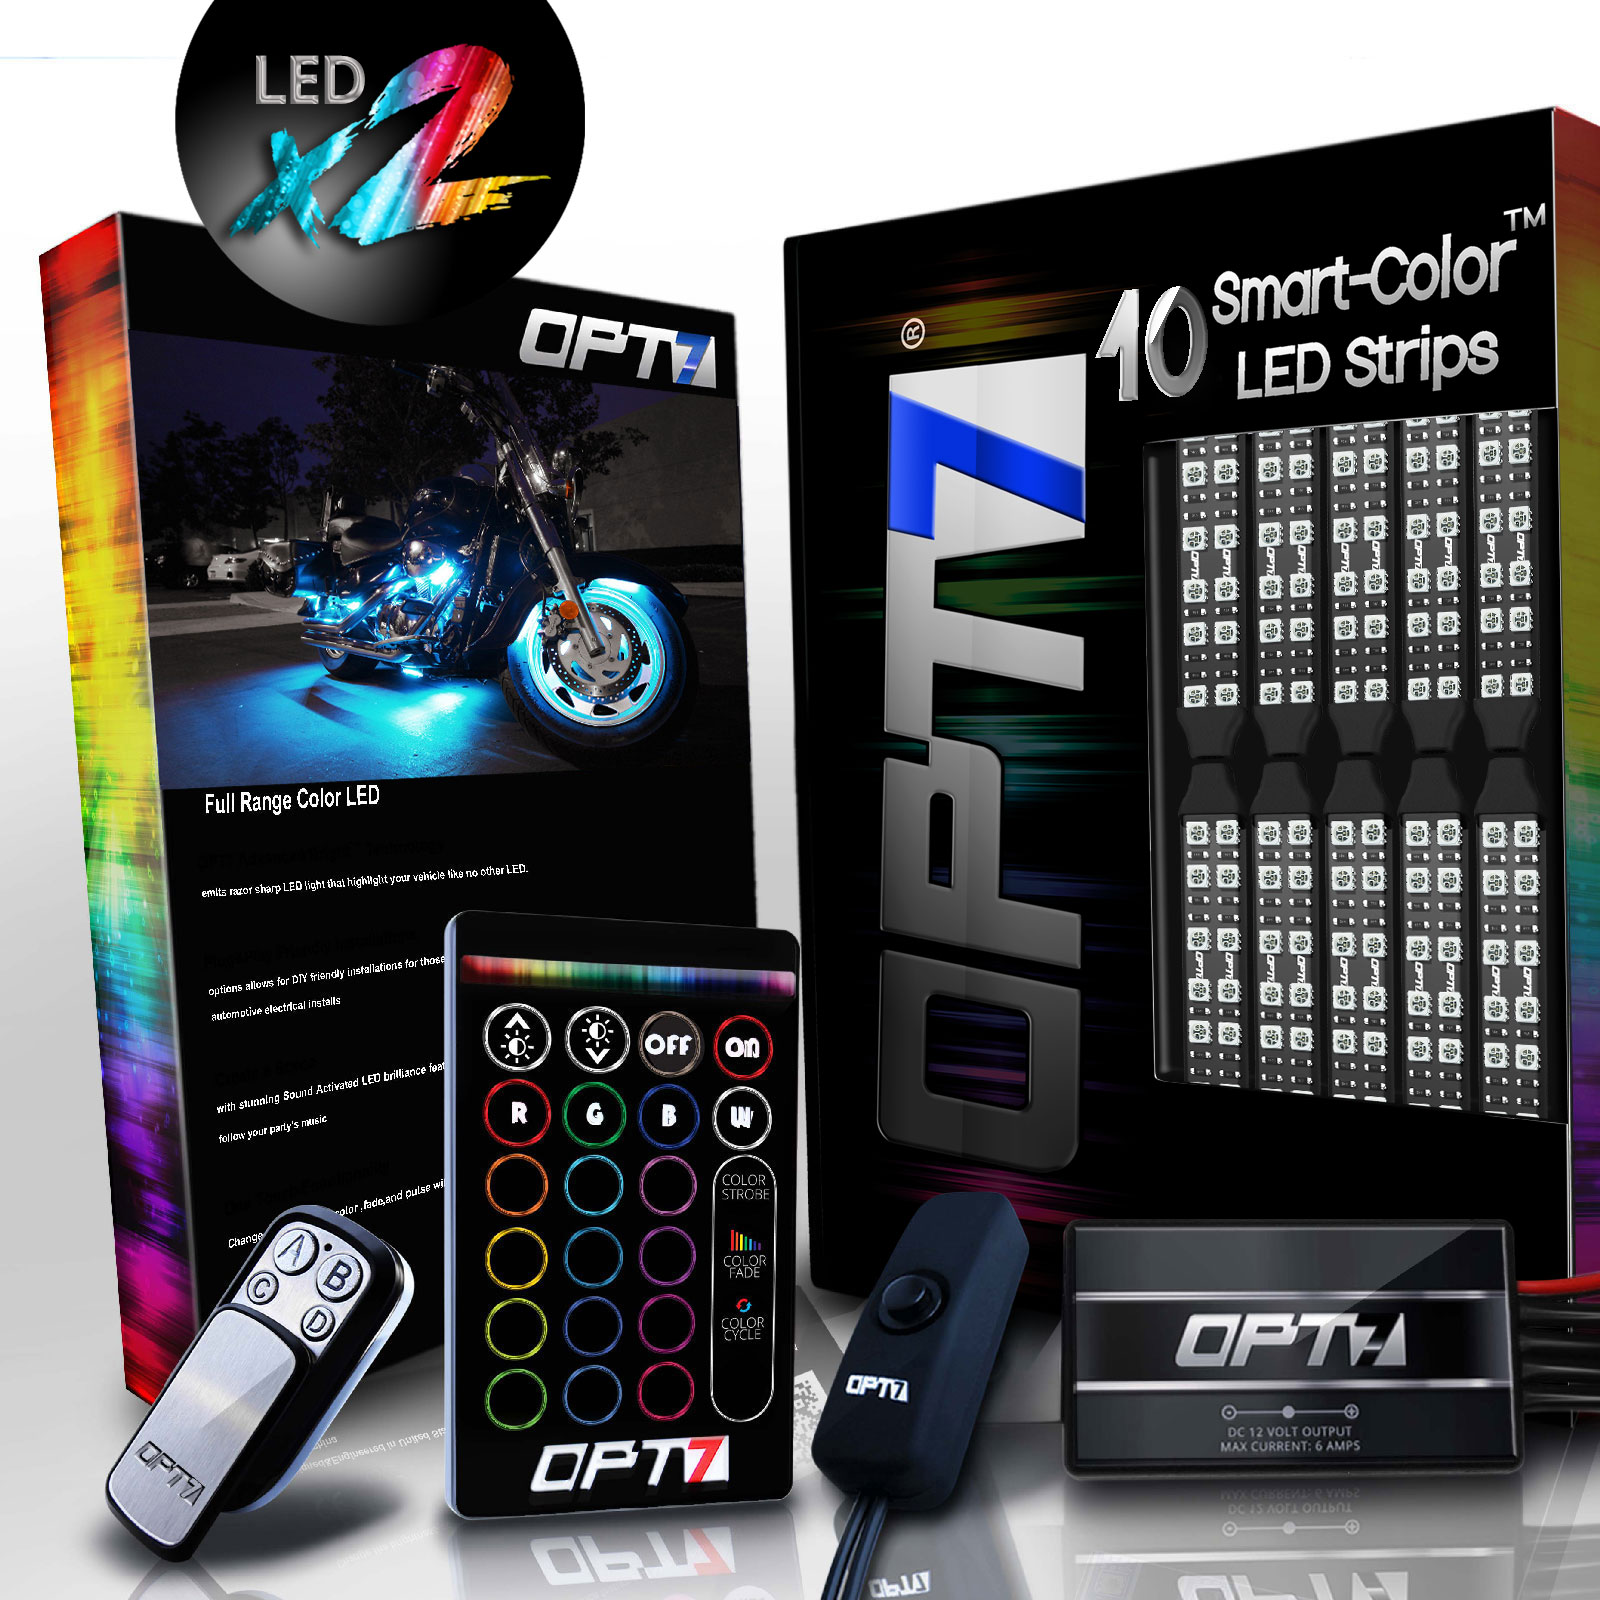 AURA® 10pc Double Row Motorcycle LED Strip Kit | Multi-Color Accent Lighting w/Wireless Switch for Cruisers